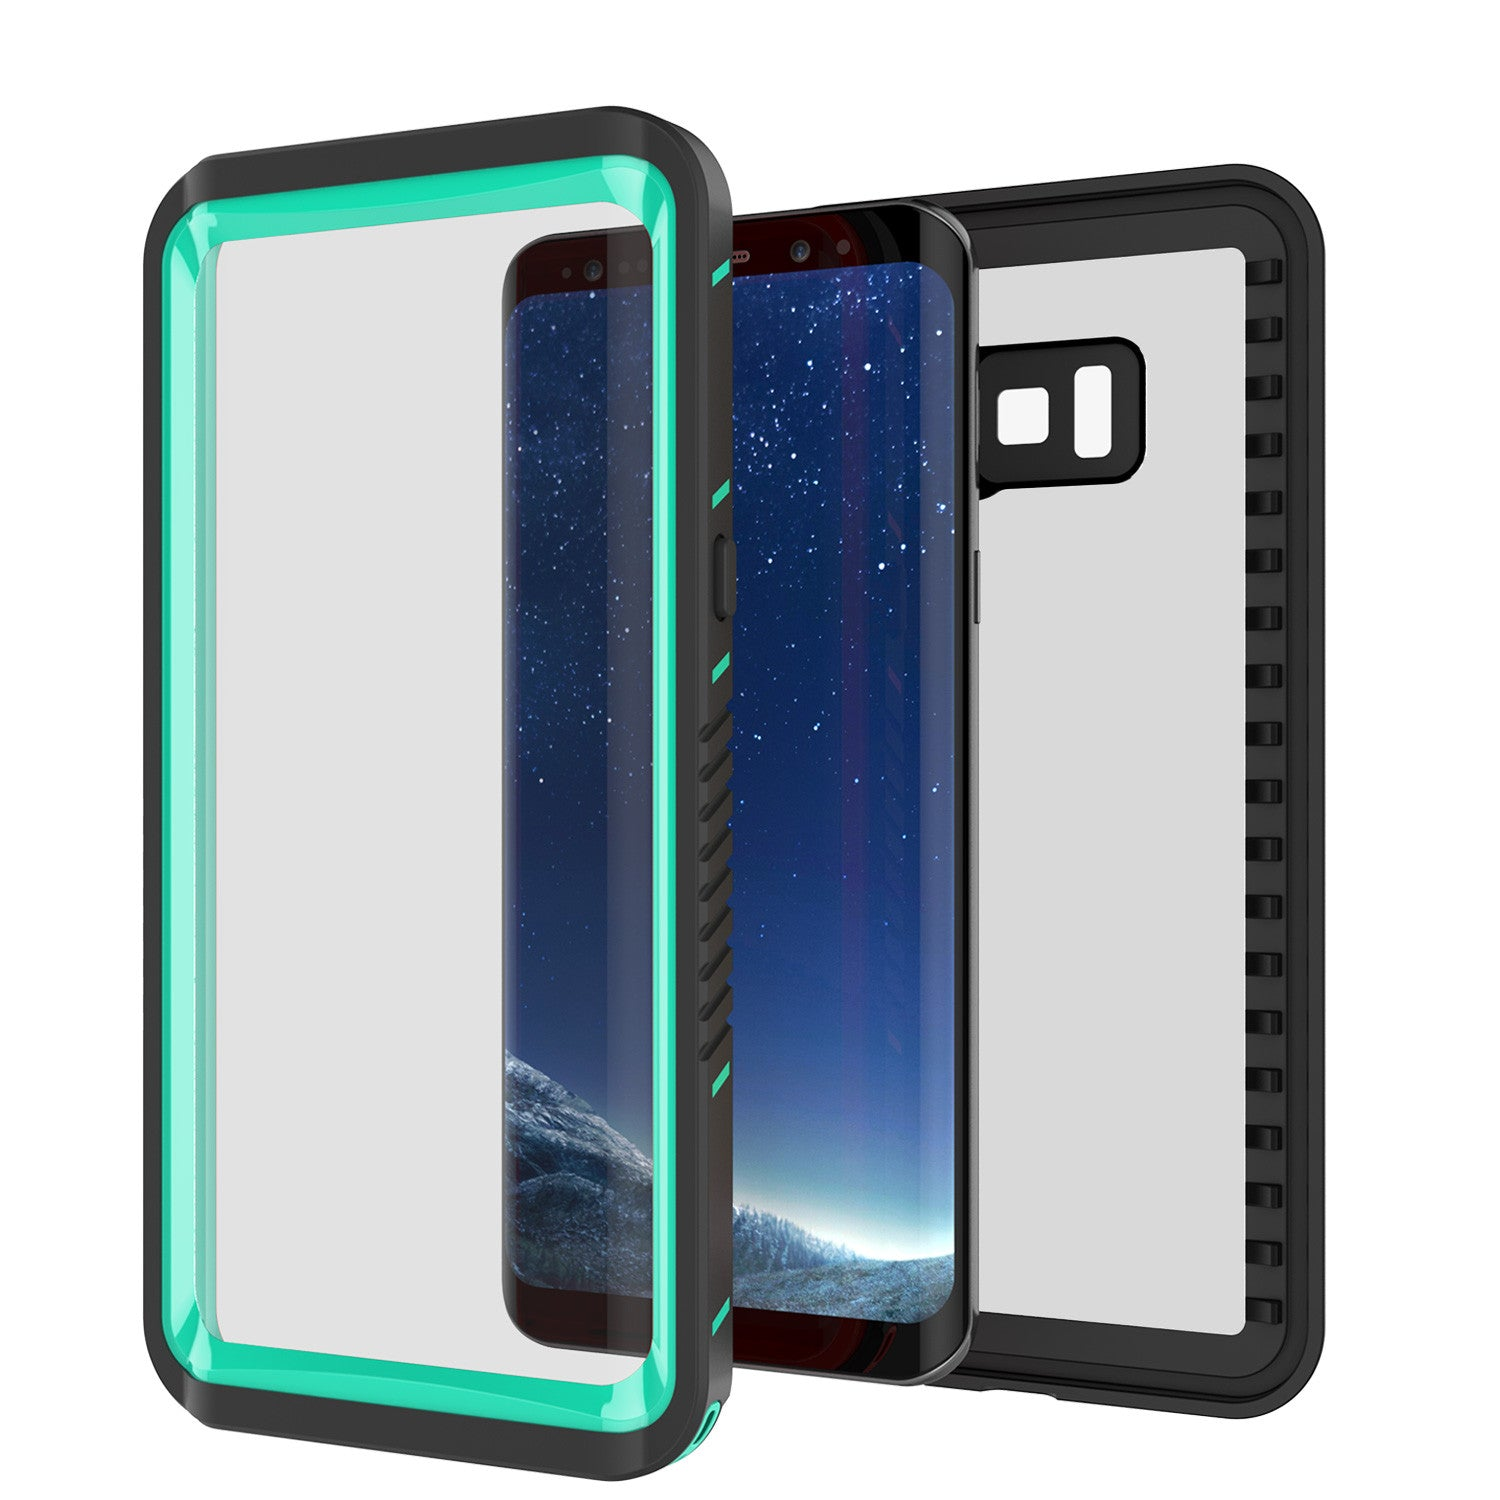 Galaxy S8 Waterproof Case, Punkcase [Extreme Series] Slim Fit with Built In Screen Protector for Samsung Galaxy S8 [Teal]